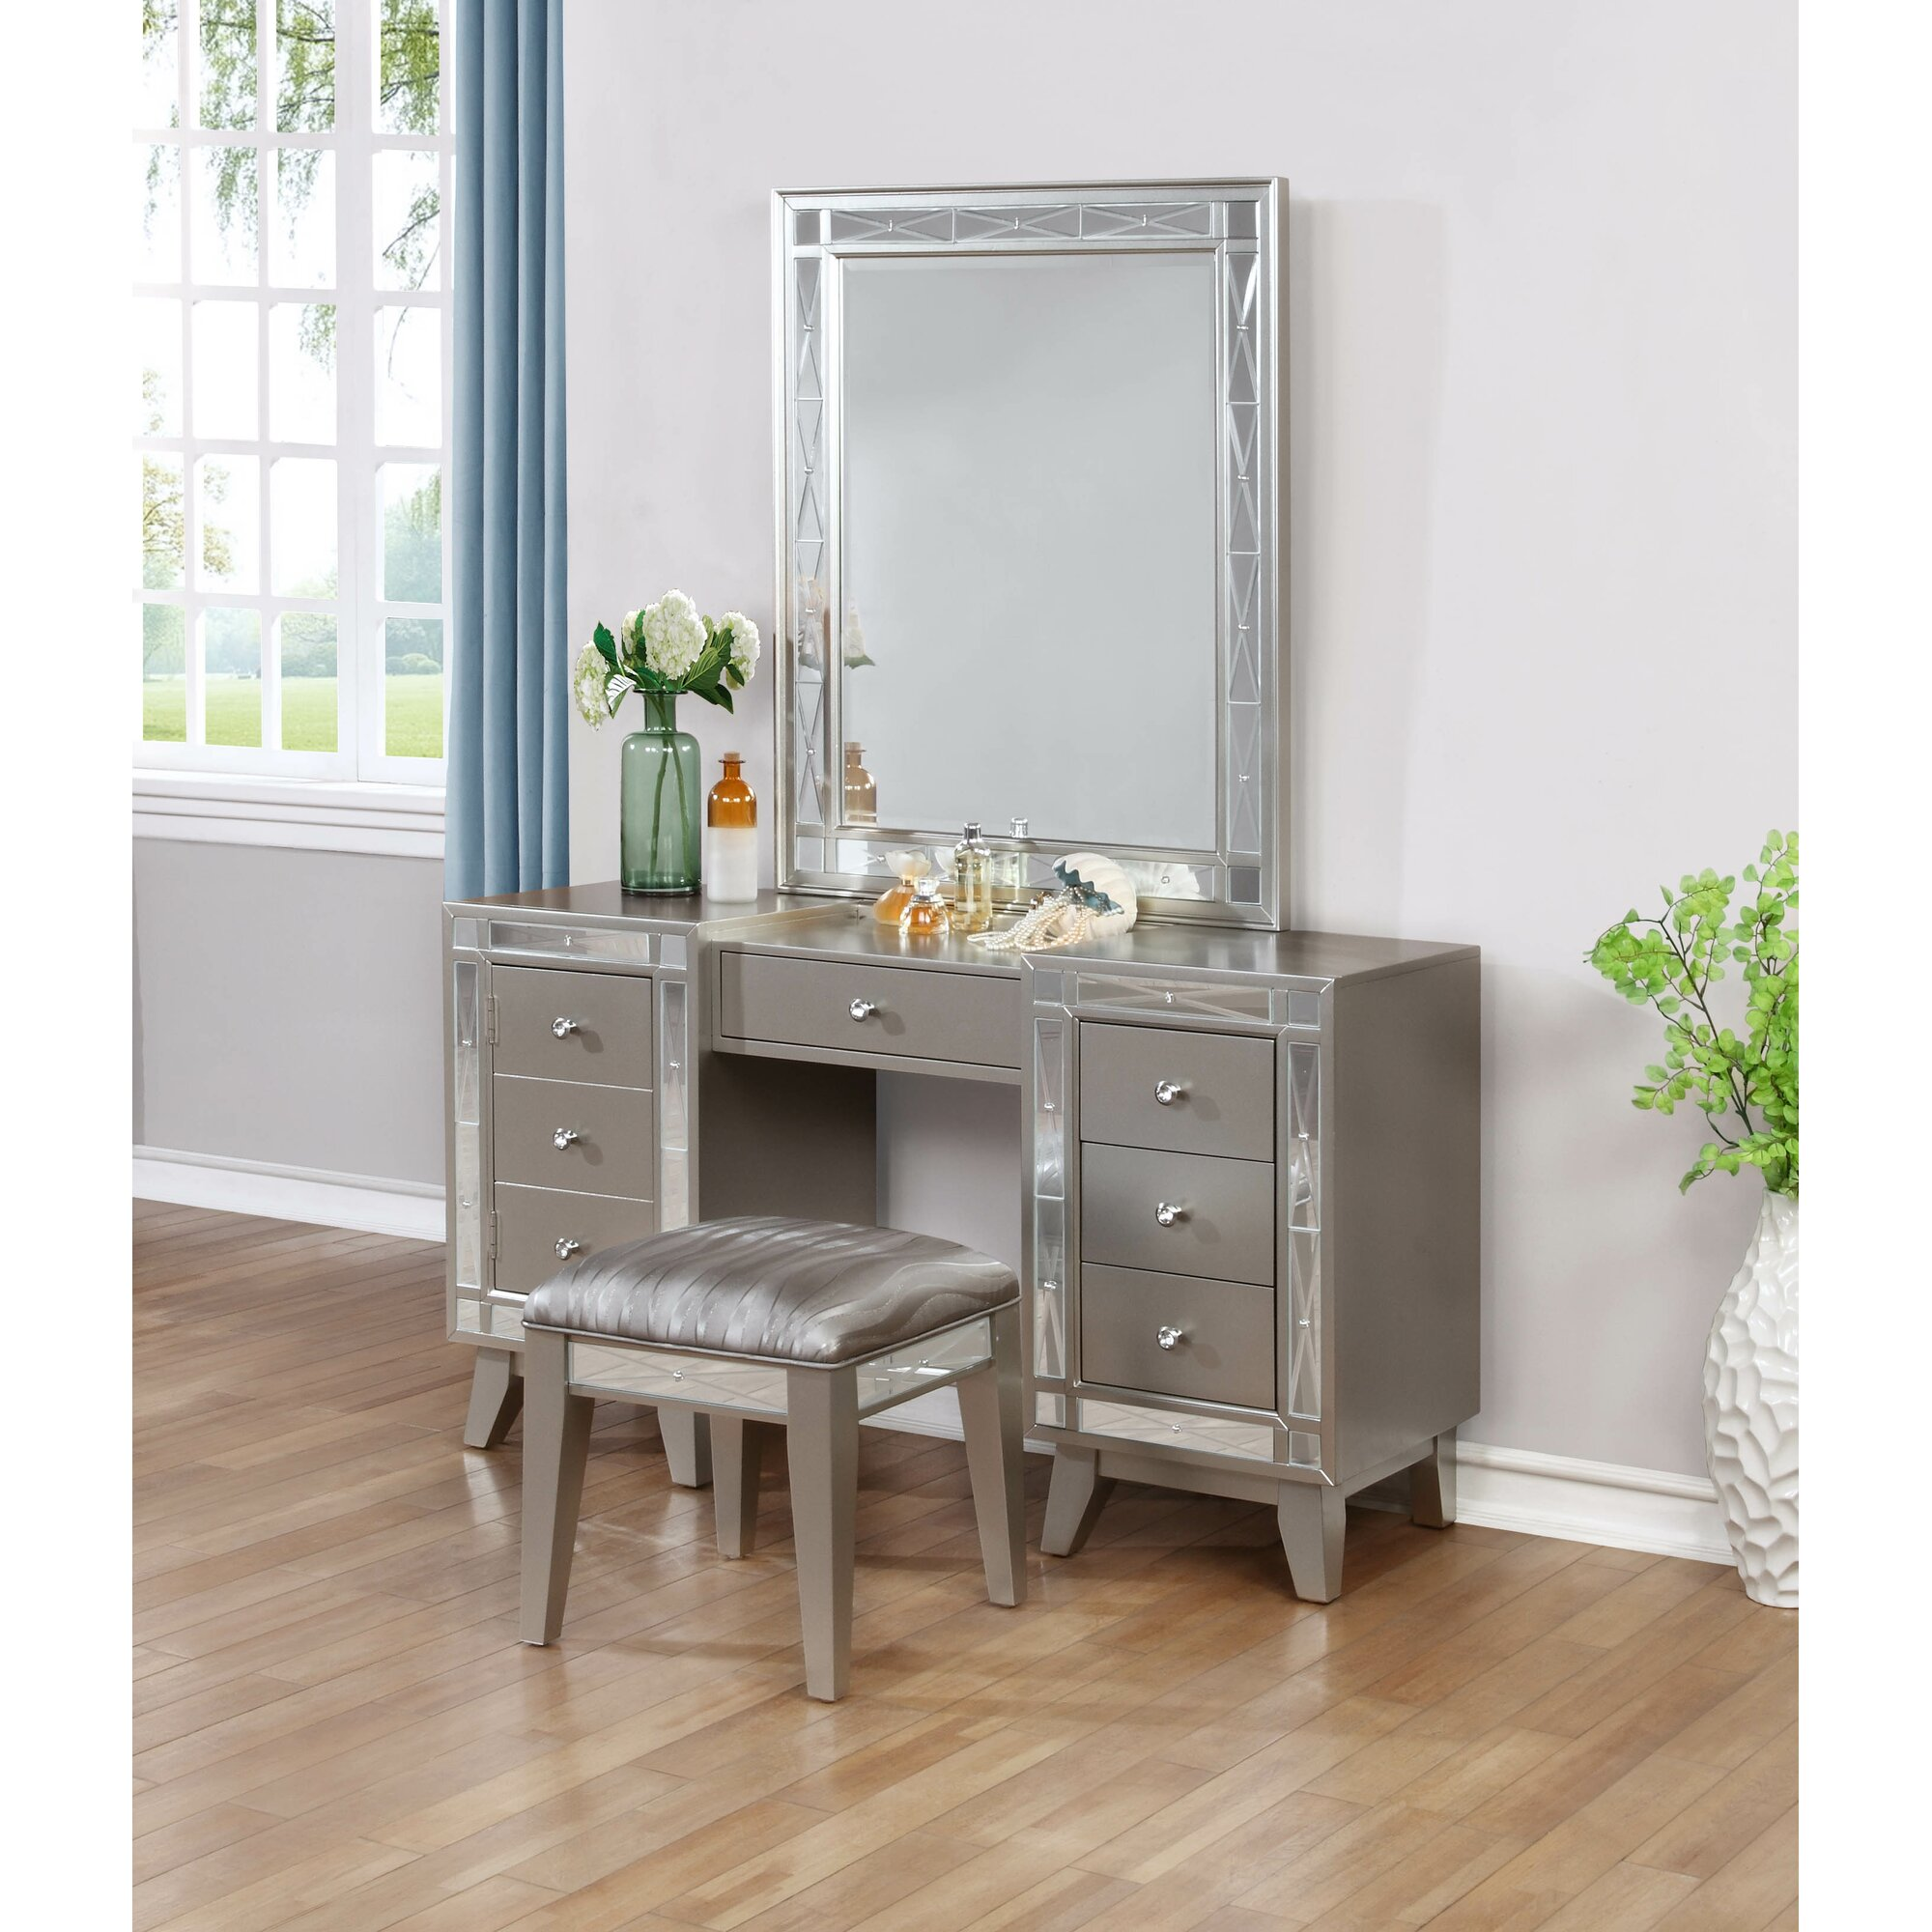 Willa Arlo Interiors Alessia Rectangular Vanity Mirror Reviews Wayfair